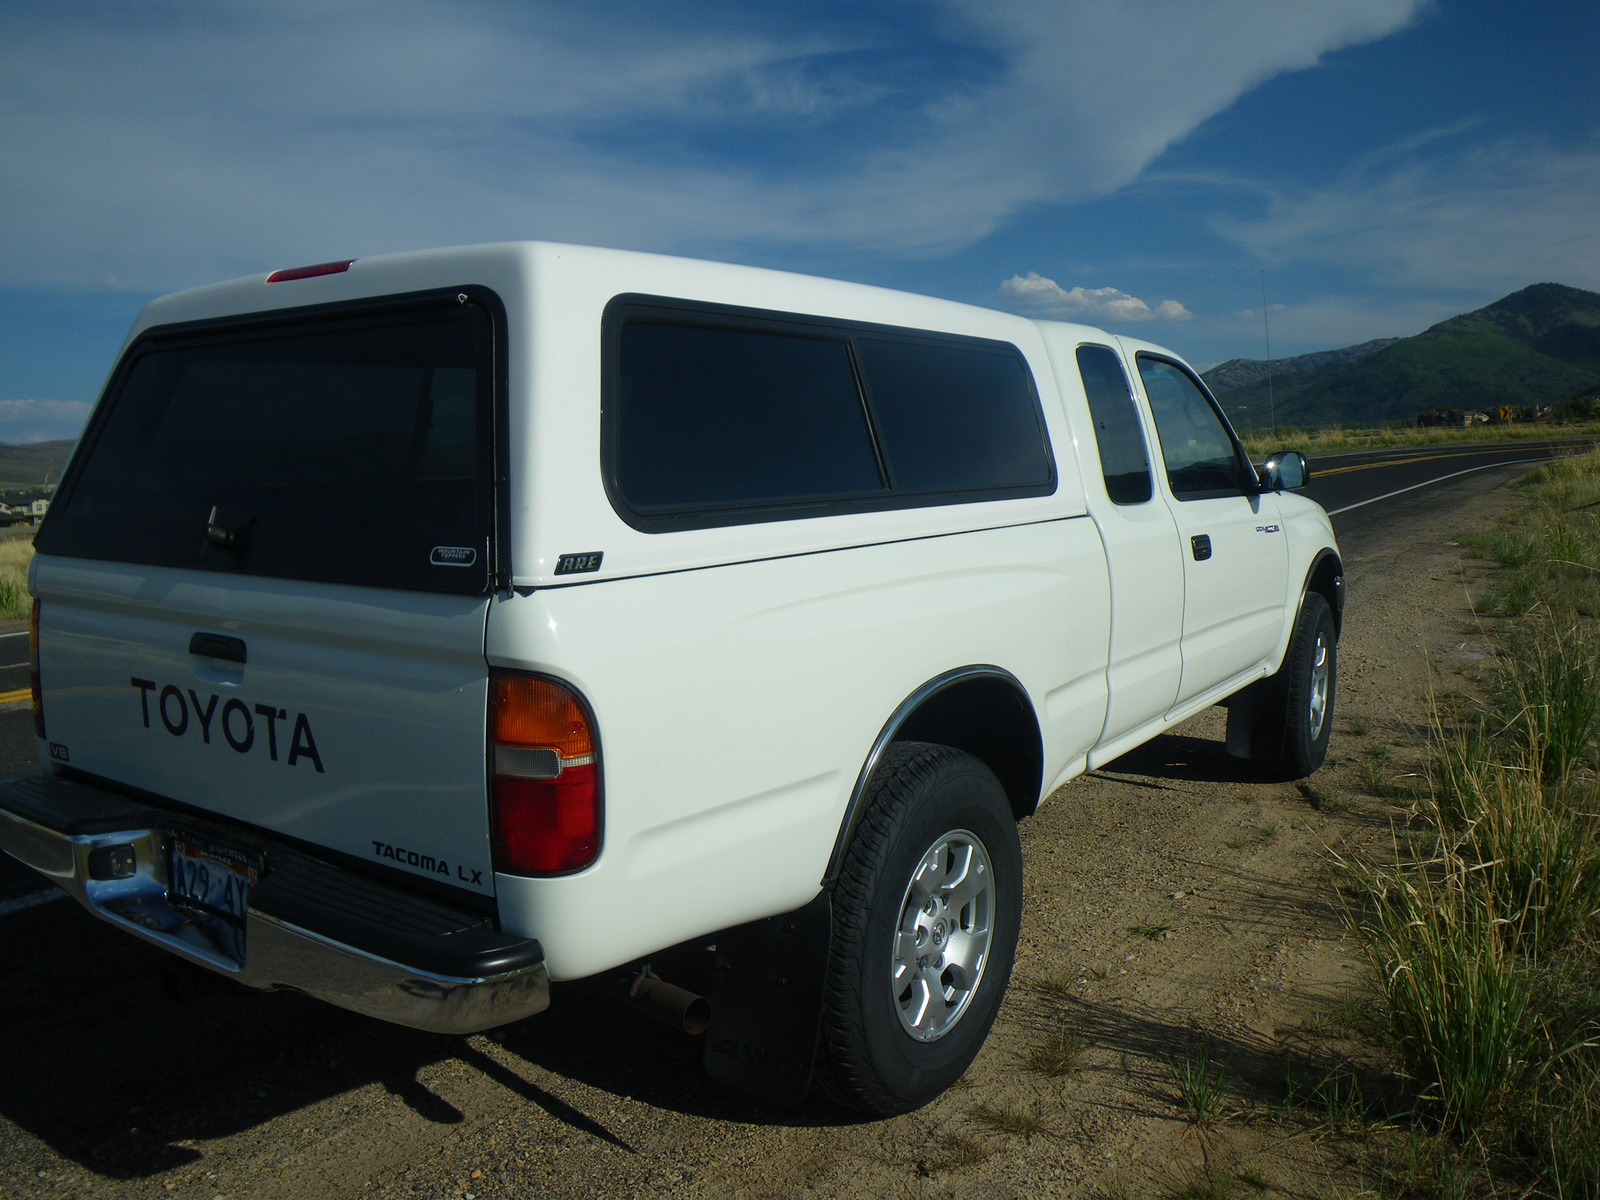 1998 Toyota Tacoma 2 Dr Std Standard Cab Sb Picture Exterior | Apps ...